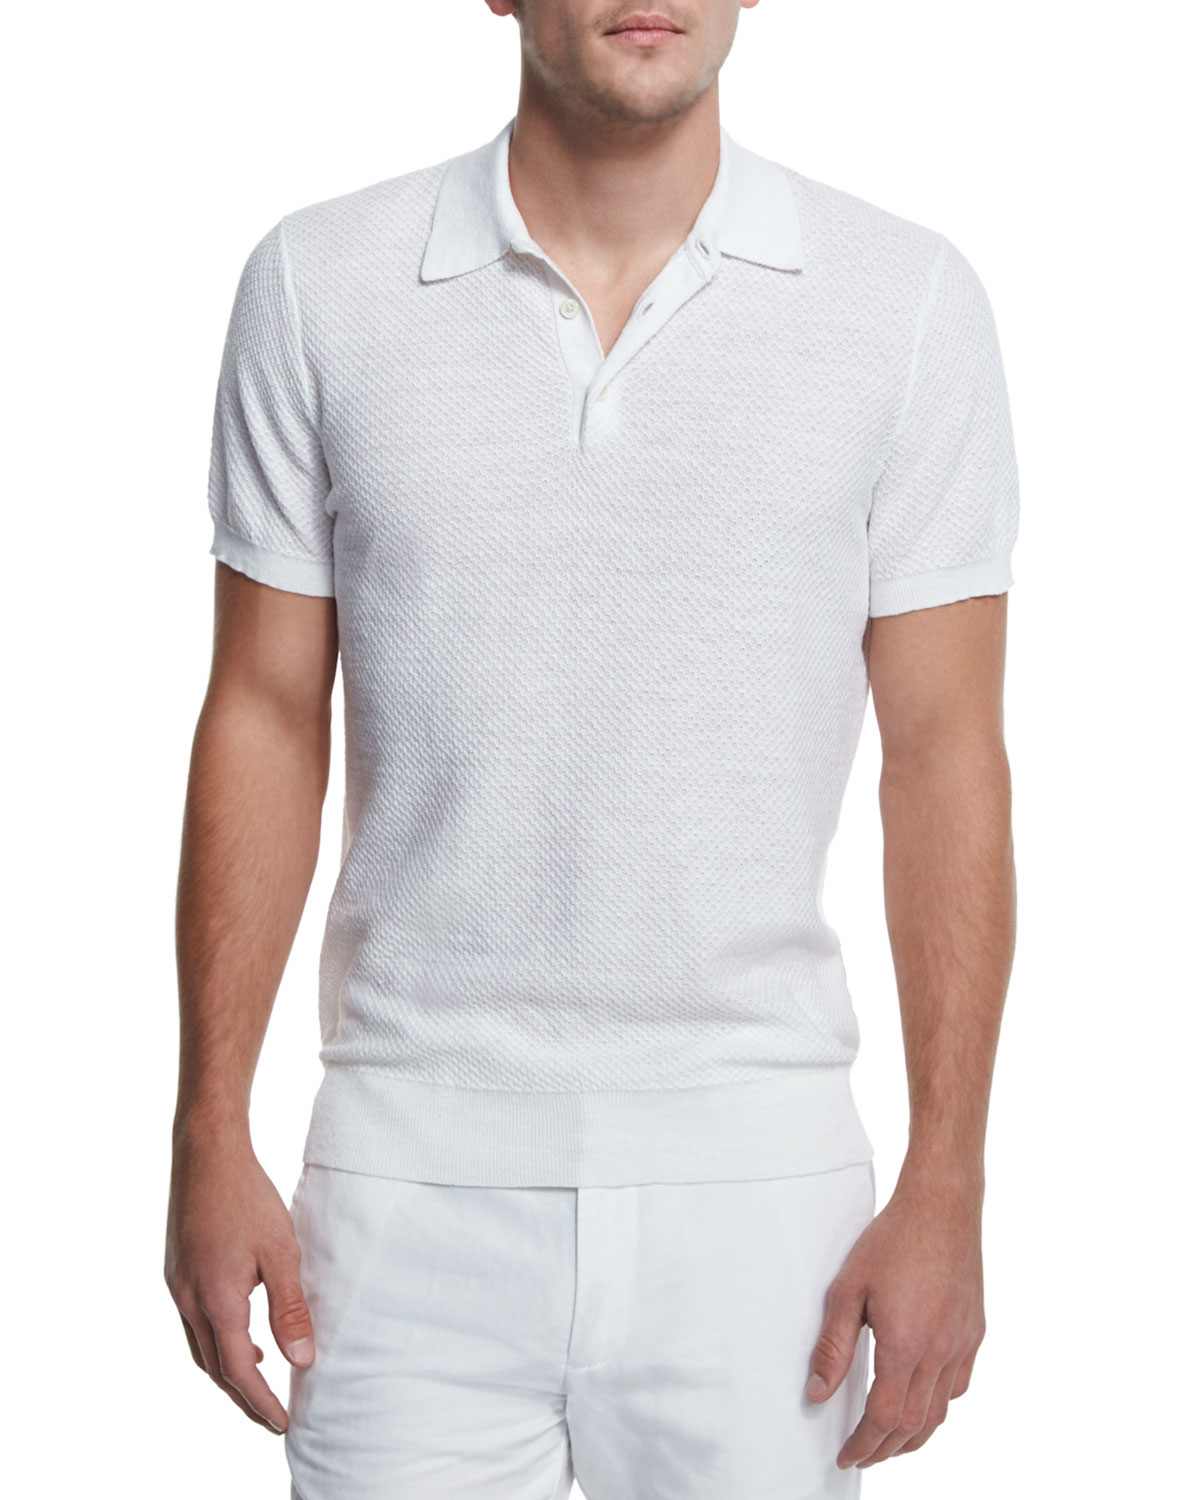 Michael Kors Textured Cotton Linen Polo Shirt In White For